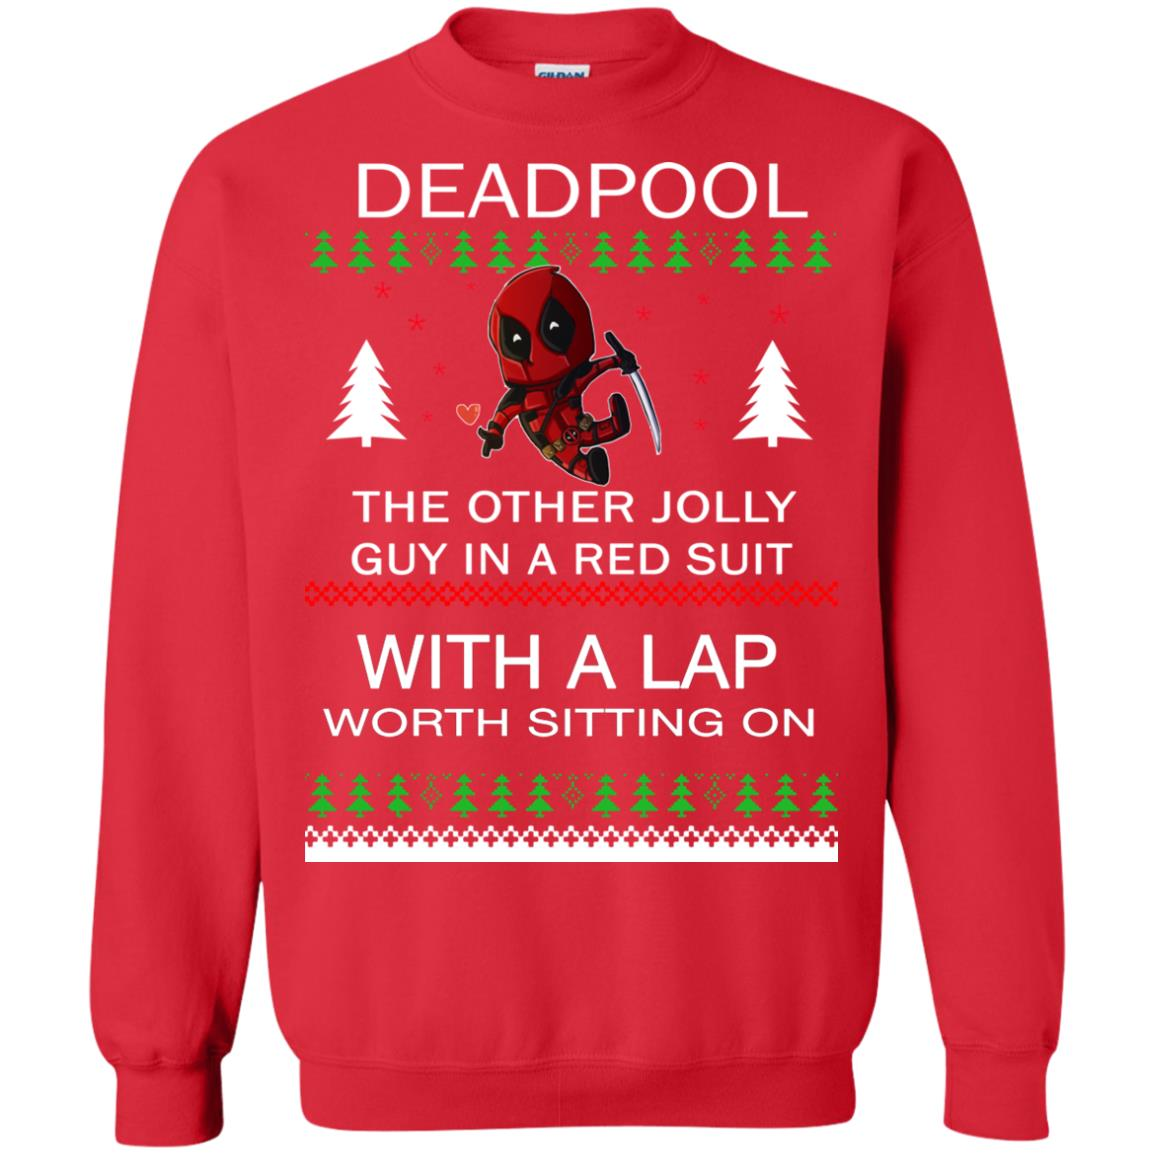 image 2837 - Deadpool The only jolly guy in a red suit with a Lap Christmas Sweater, Ugly Sweatshirts